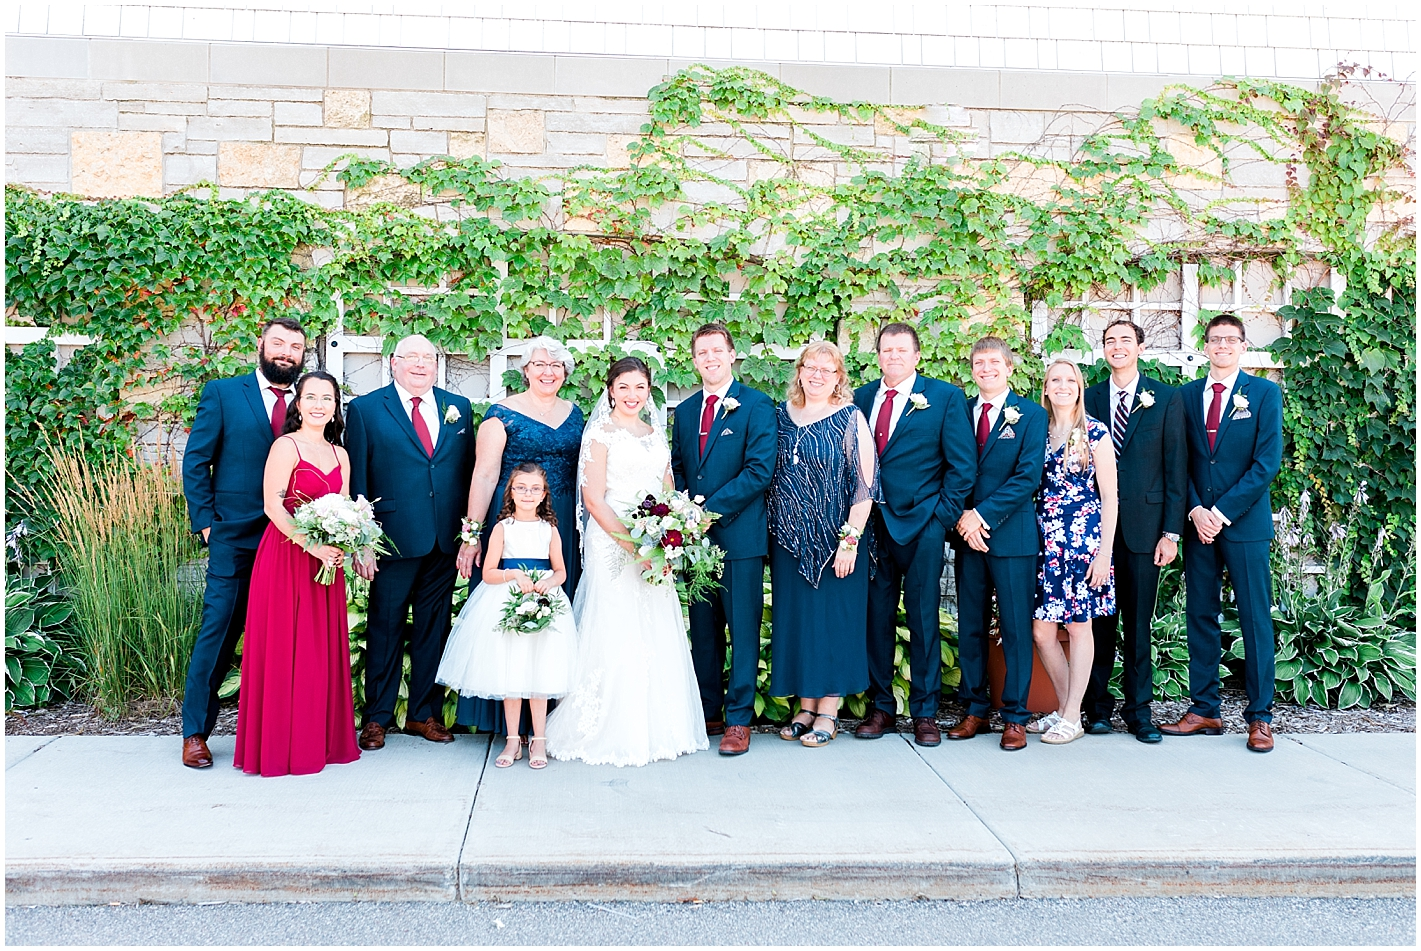 Family Wedding Formal By Alyssa Parker Photography